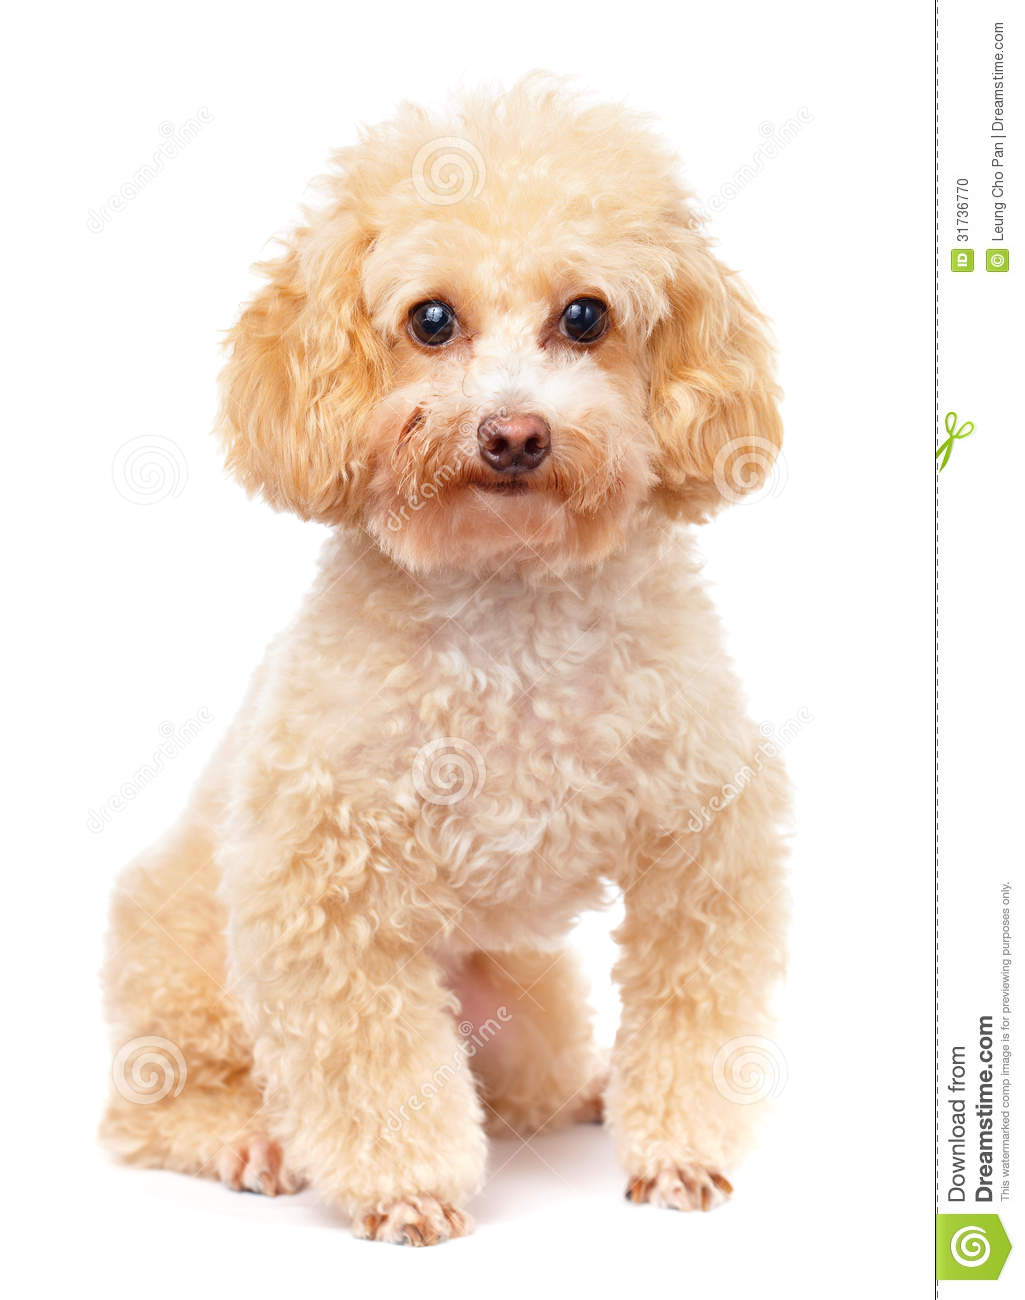 dog poodle stock photo image 31736770